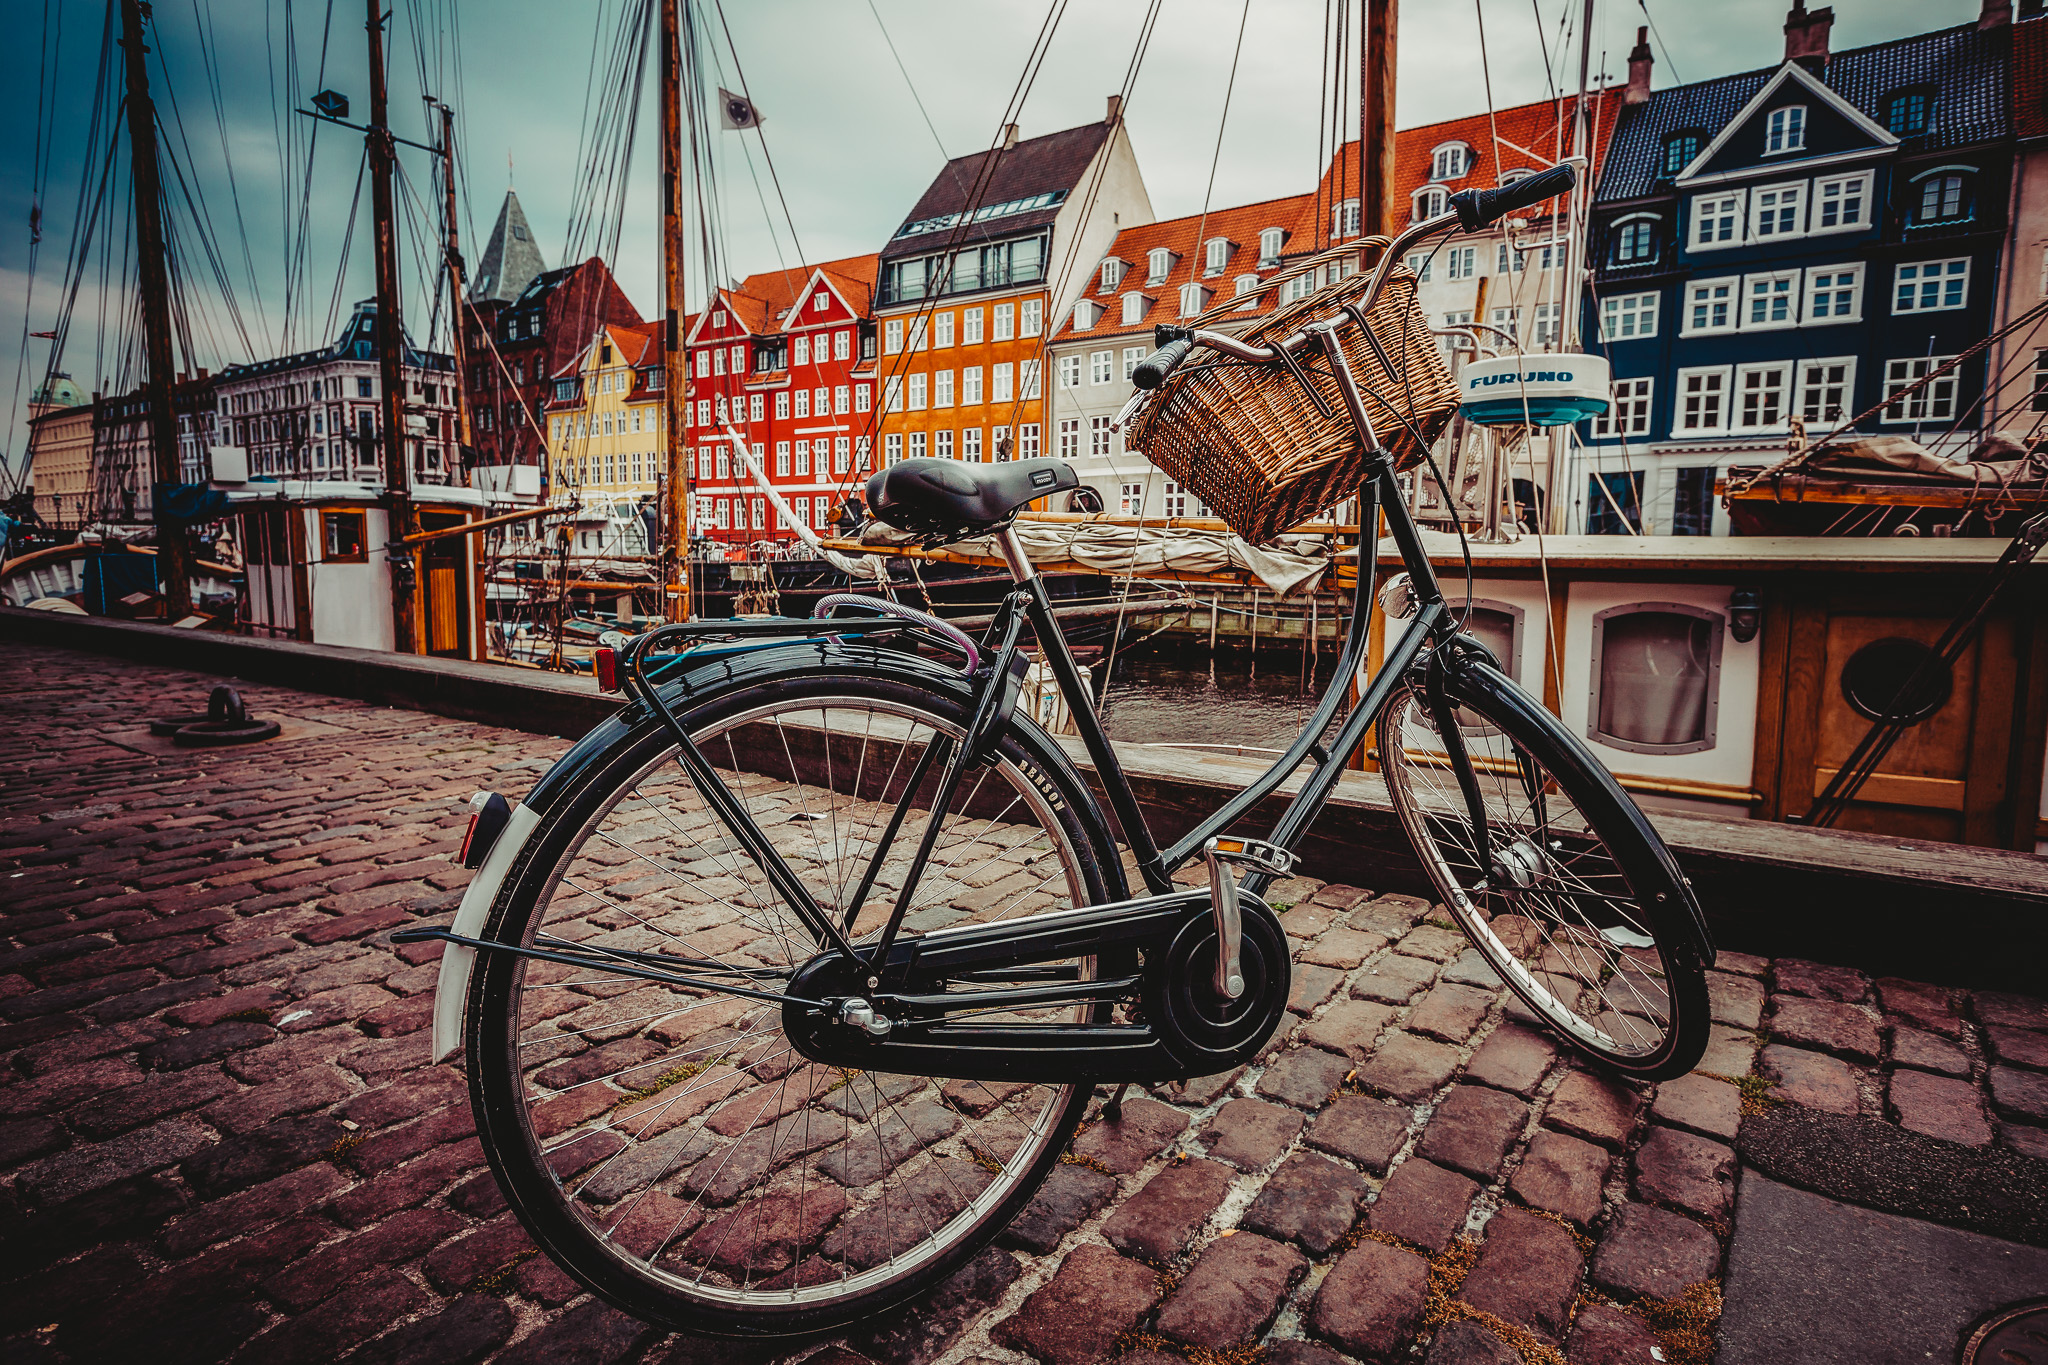 bike at nyhavn copenhagen denmark